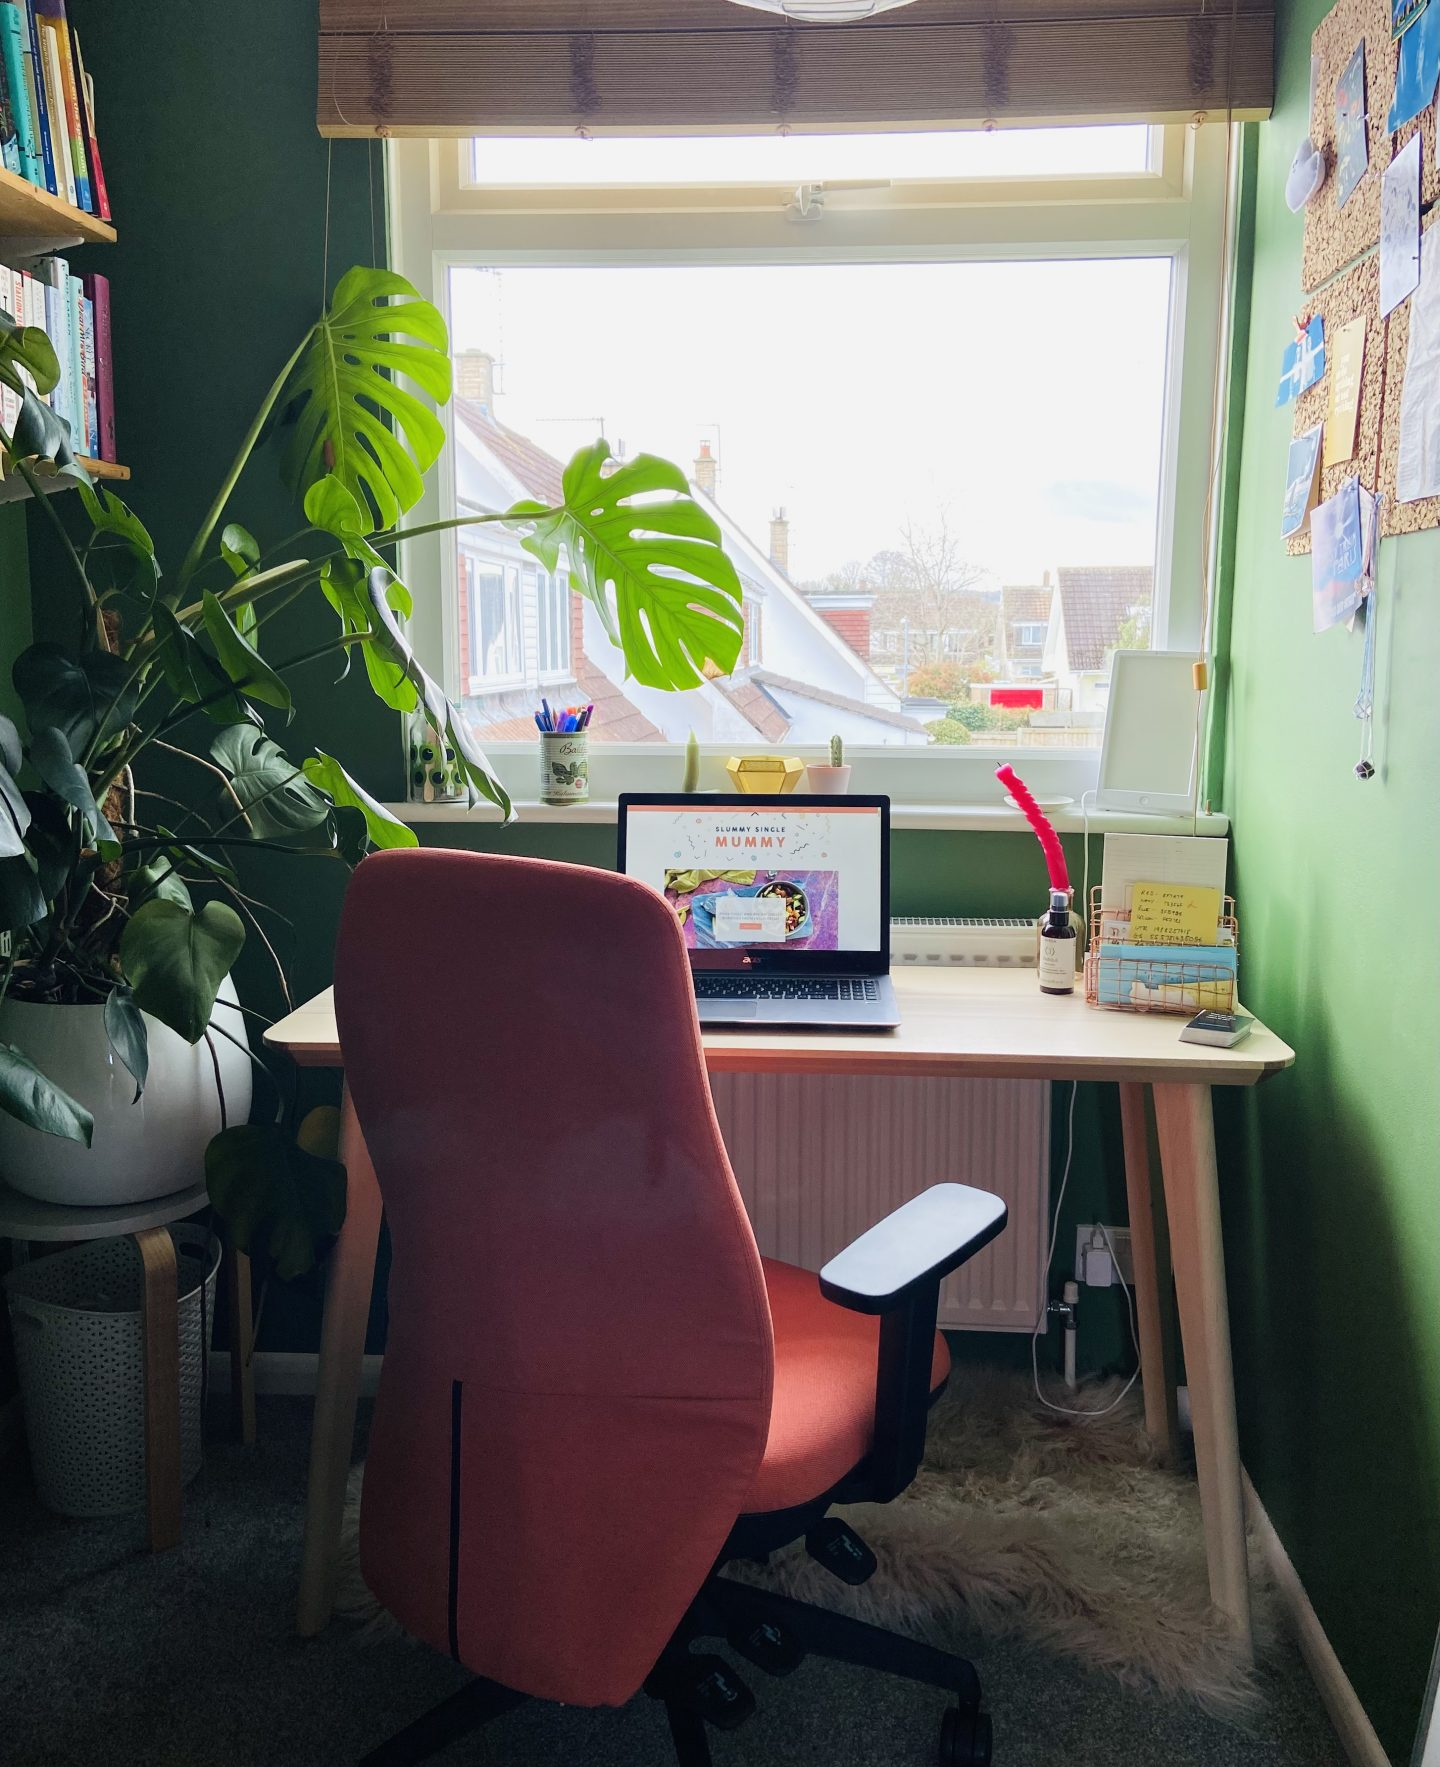 Summit at home office chair